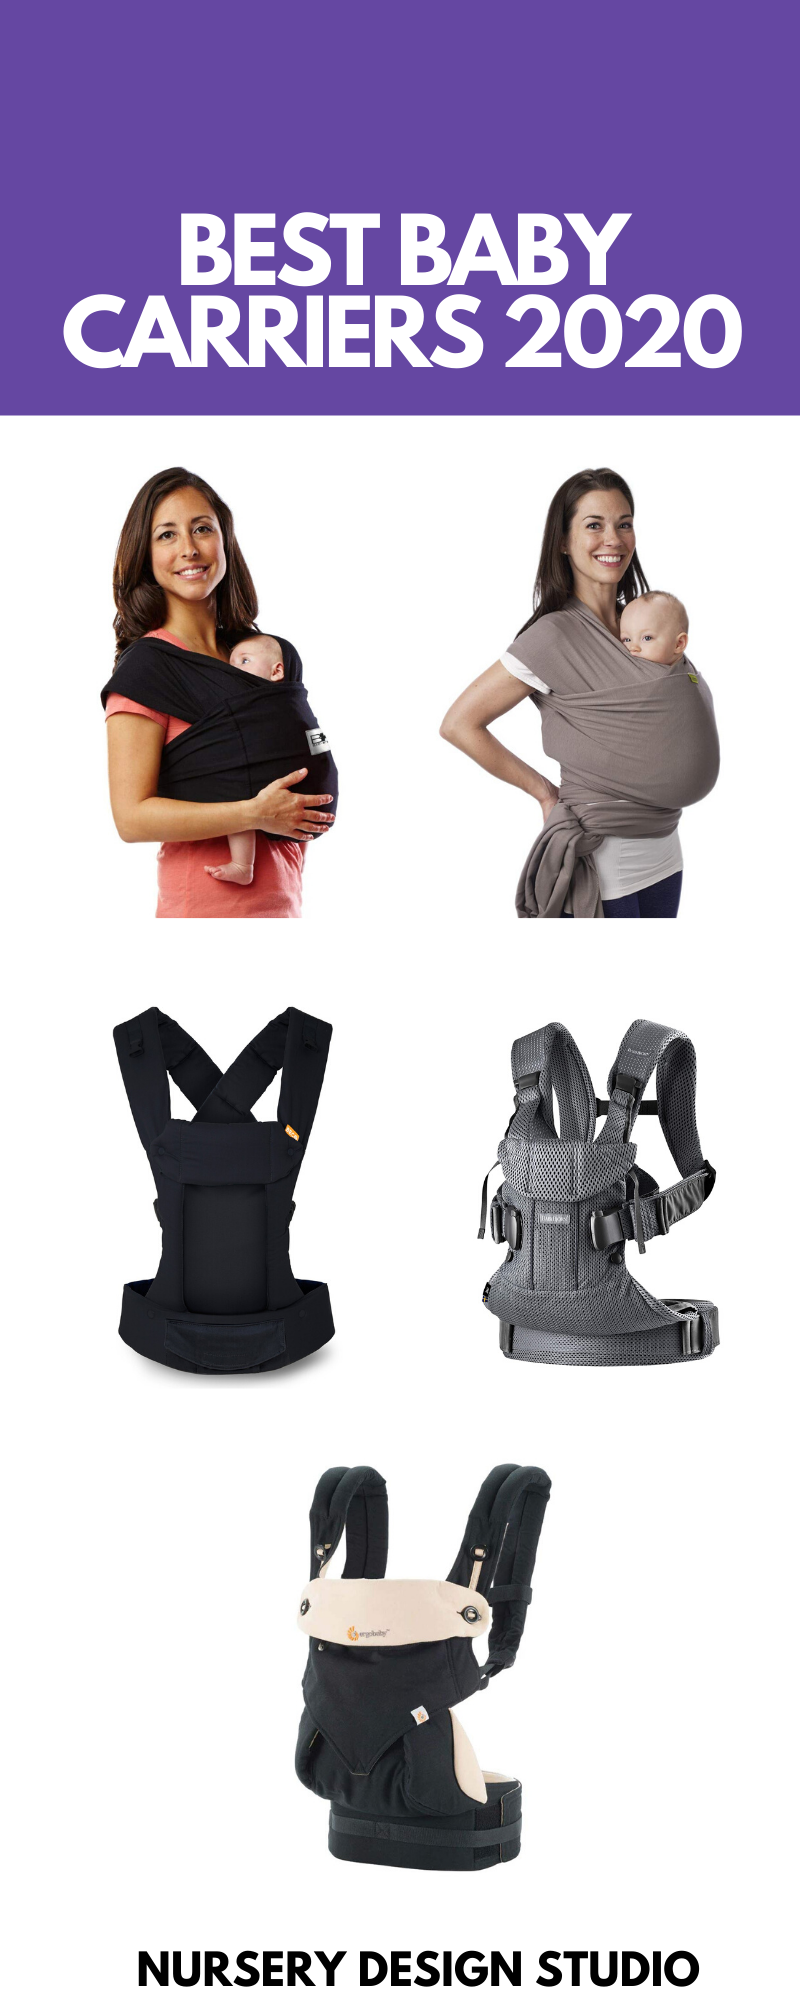 BEST BABY CARRIERS